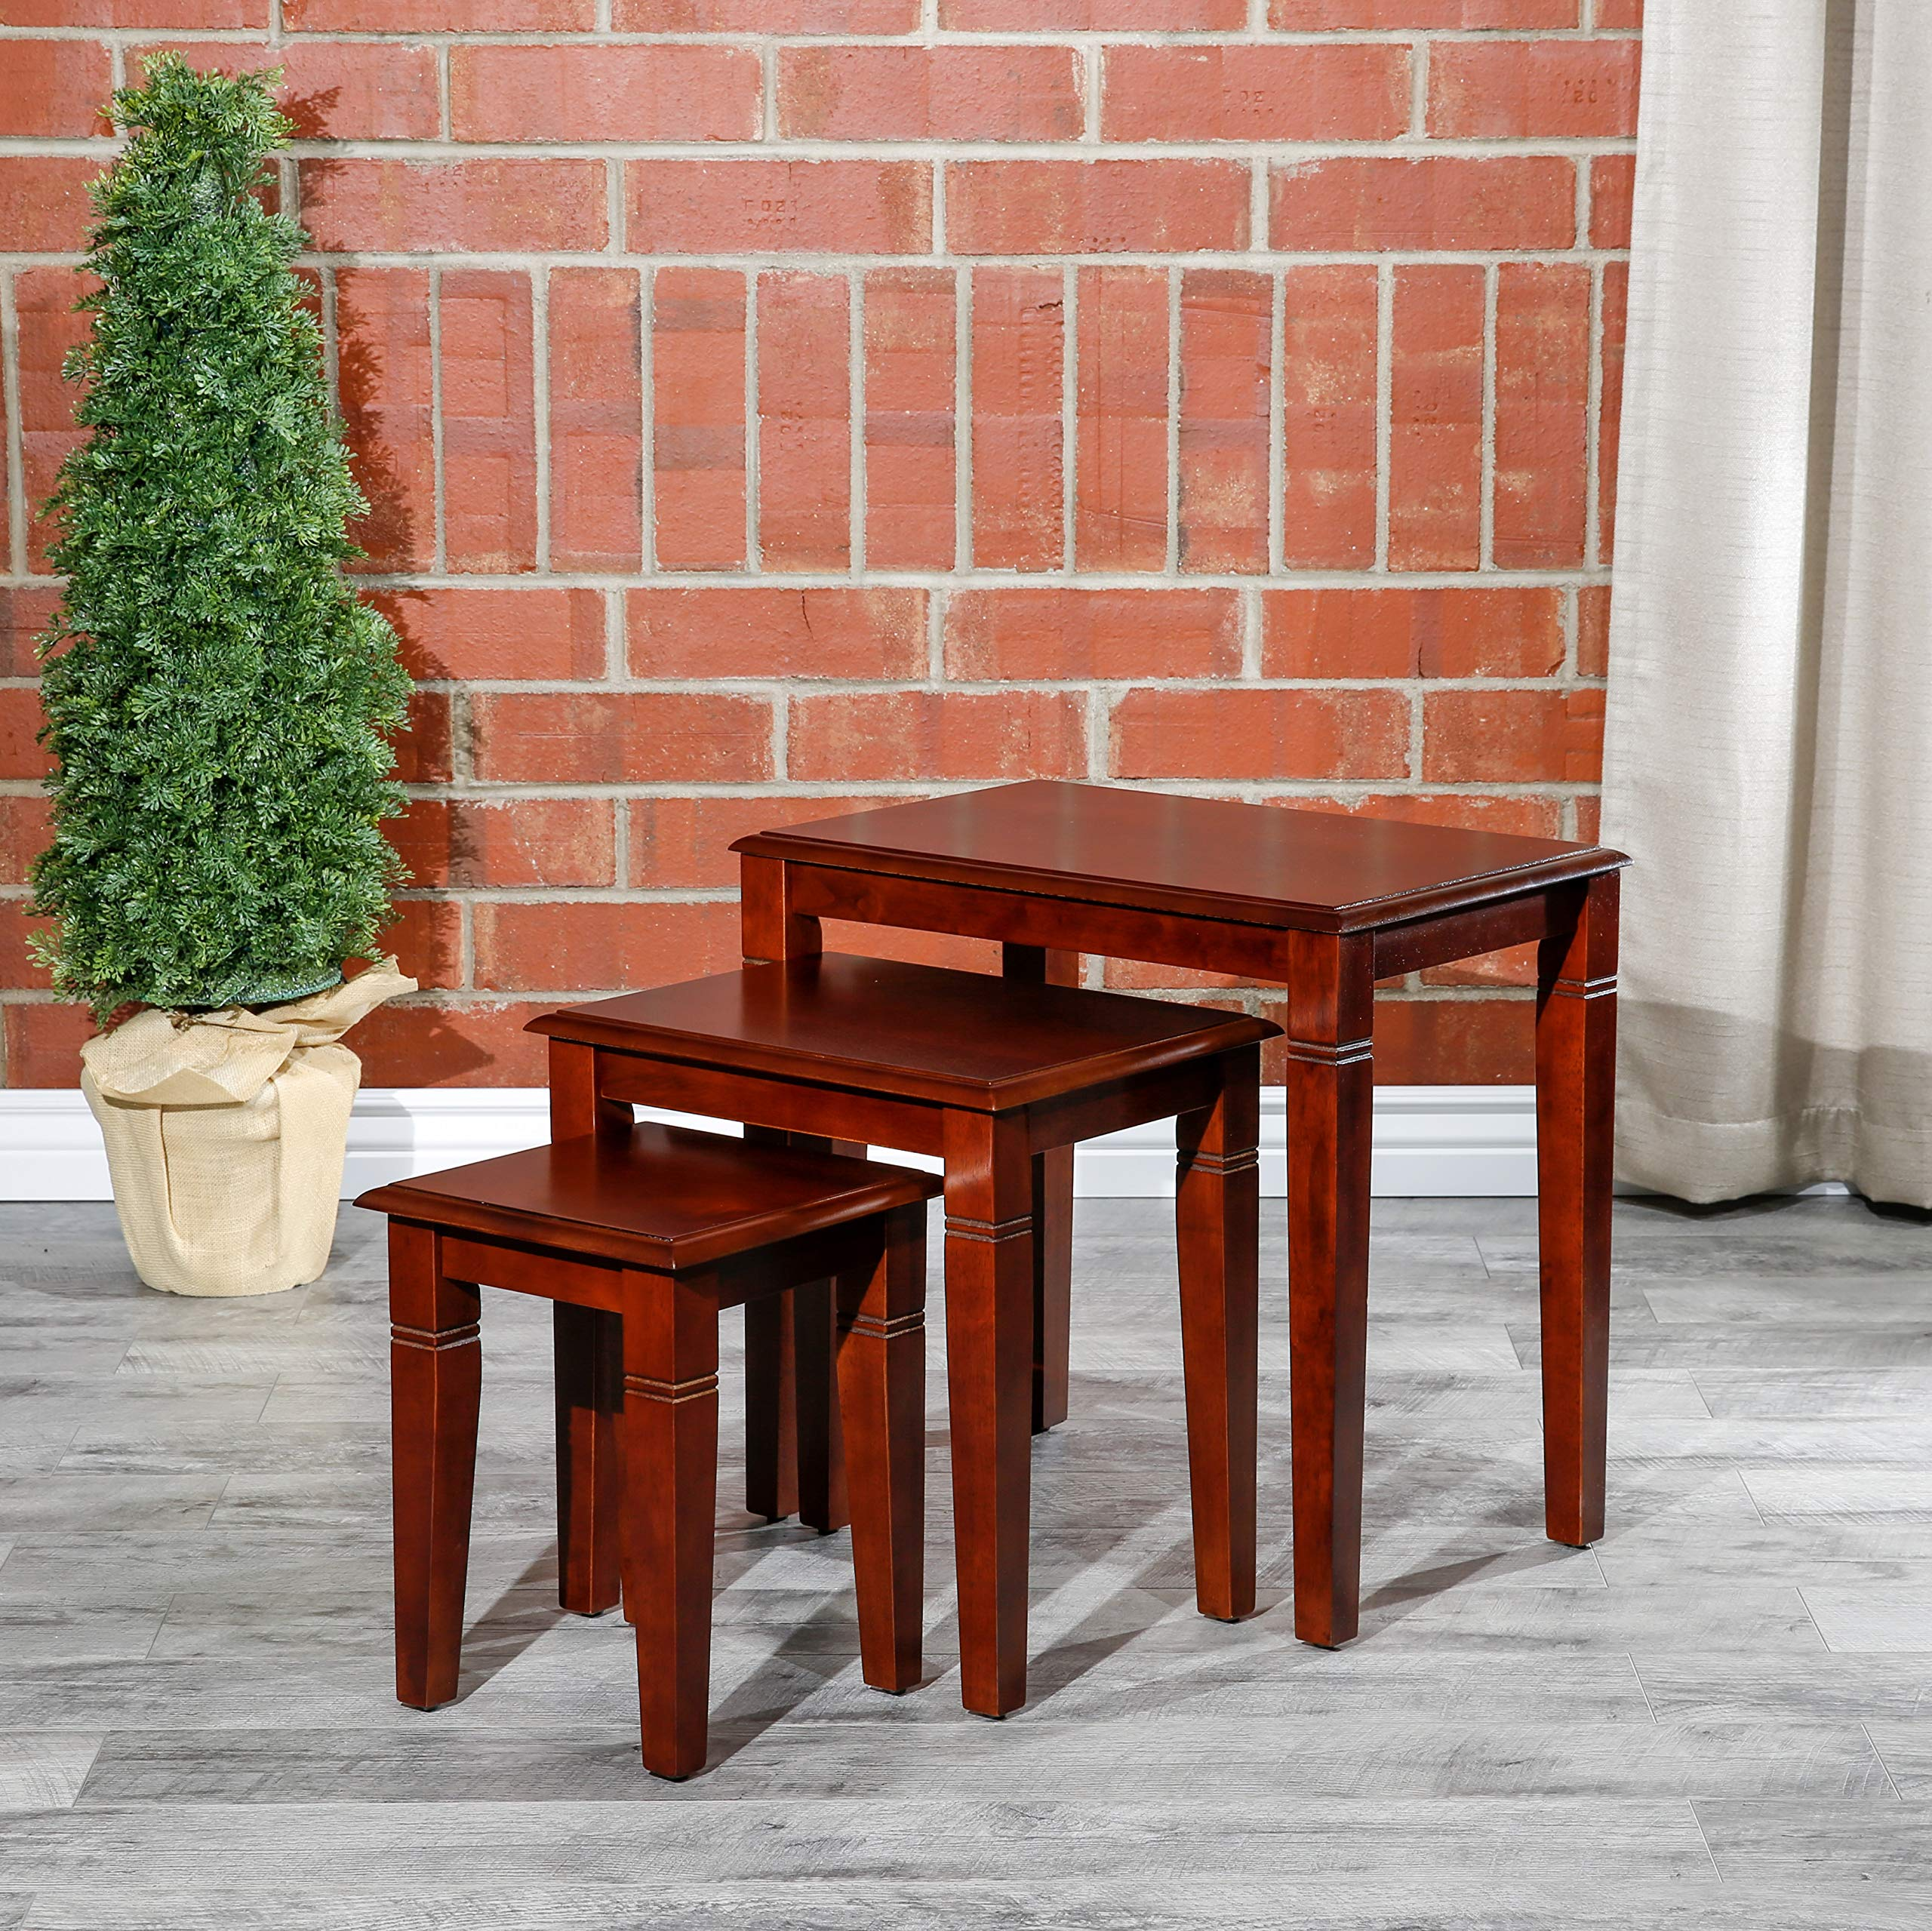 DTY Indoor Living Golden 3-Piece Nesting Table Collection - Cherry by DTY